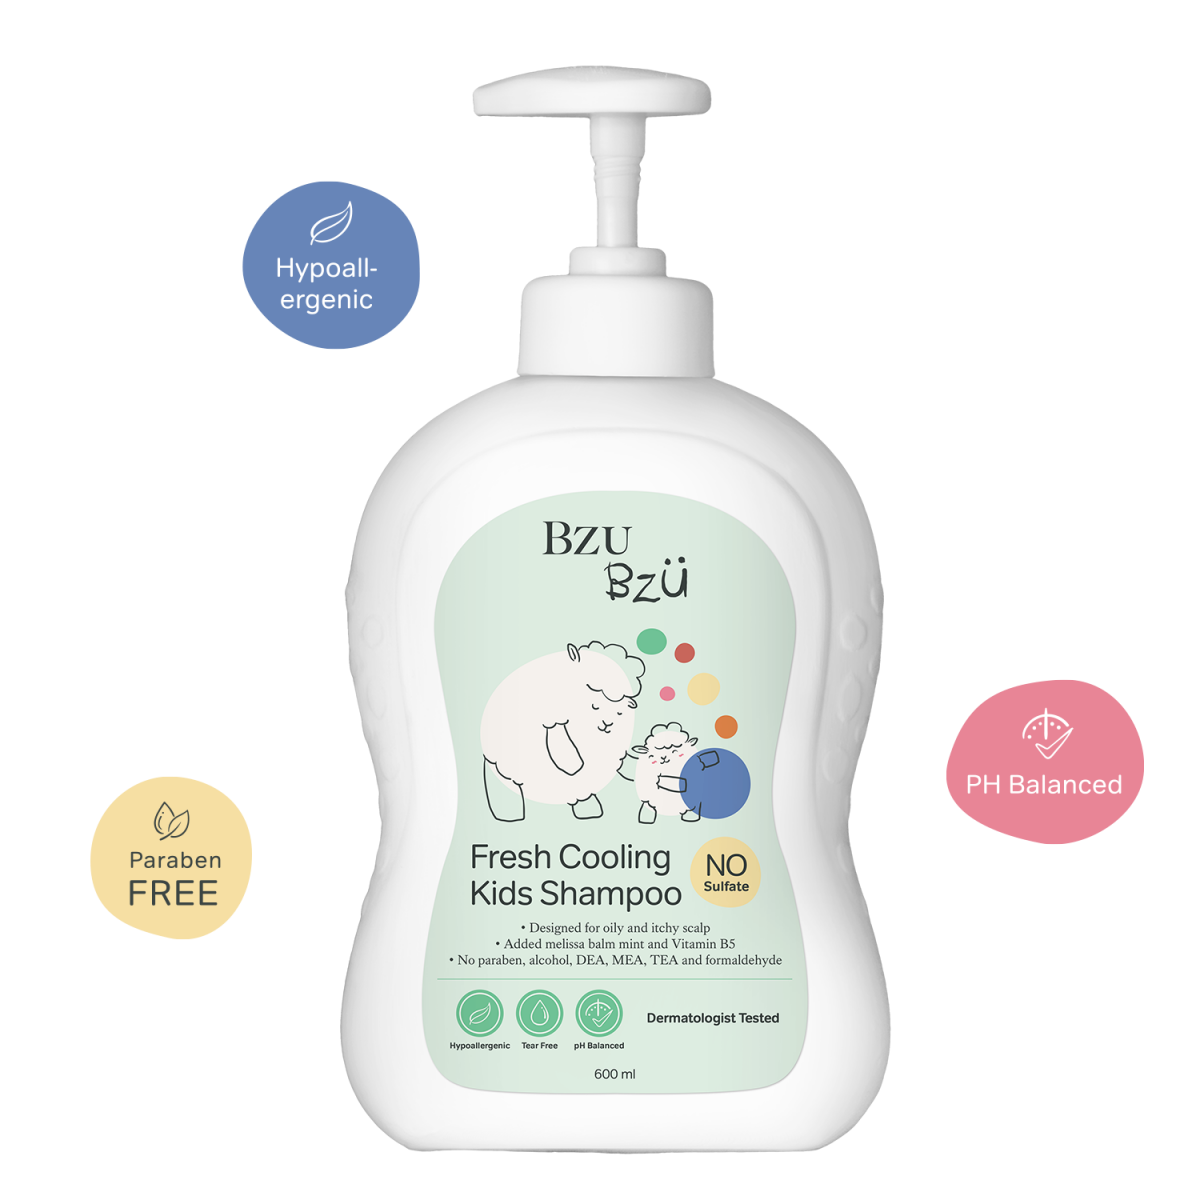 BZU BZU Fresh Cooling Kids Shampoo 200ml - Product of Singapore Made in Malaysia